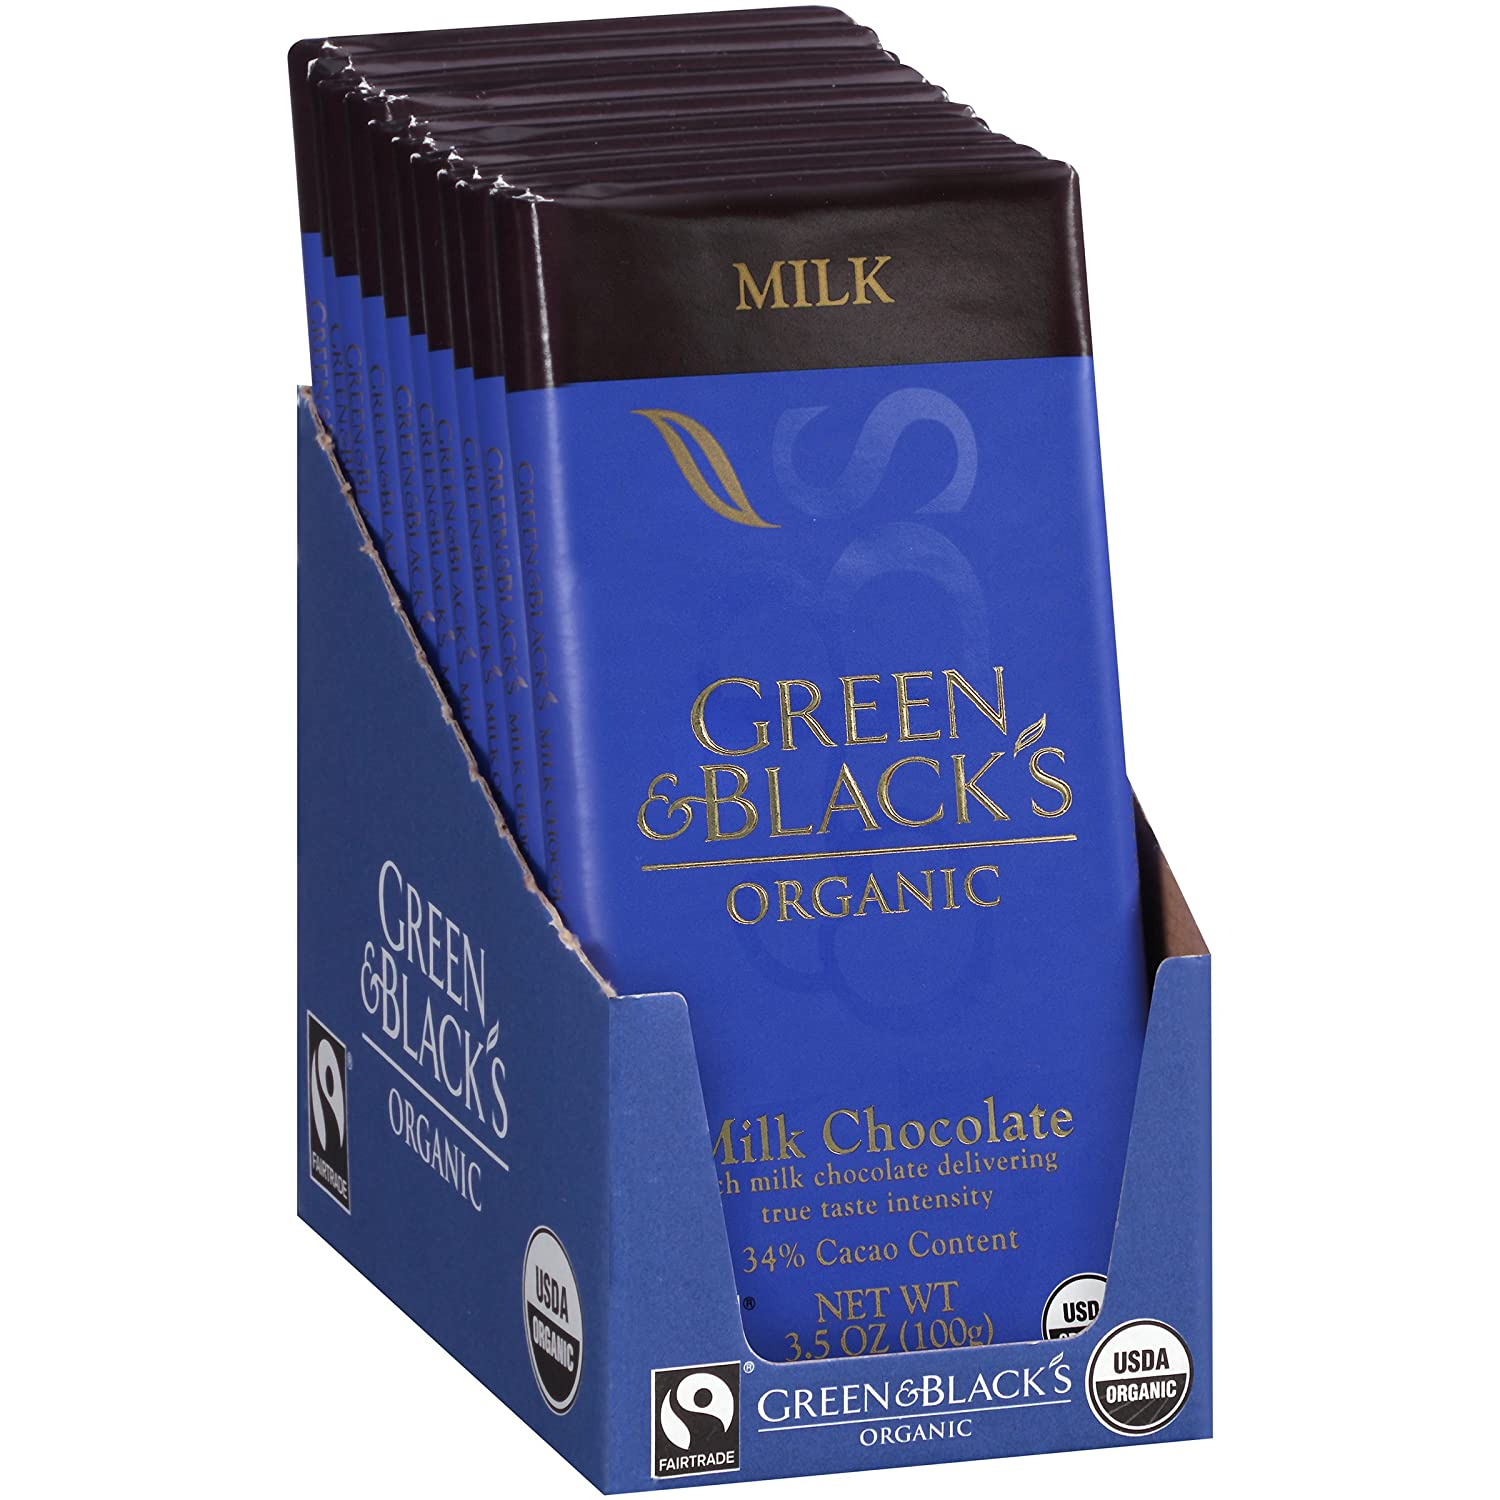 Green & Black's Organic Milk Chocolate, 34% Cacao, 3.5 Ounce Bars,10 count